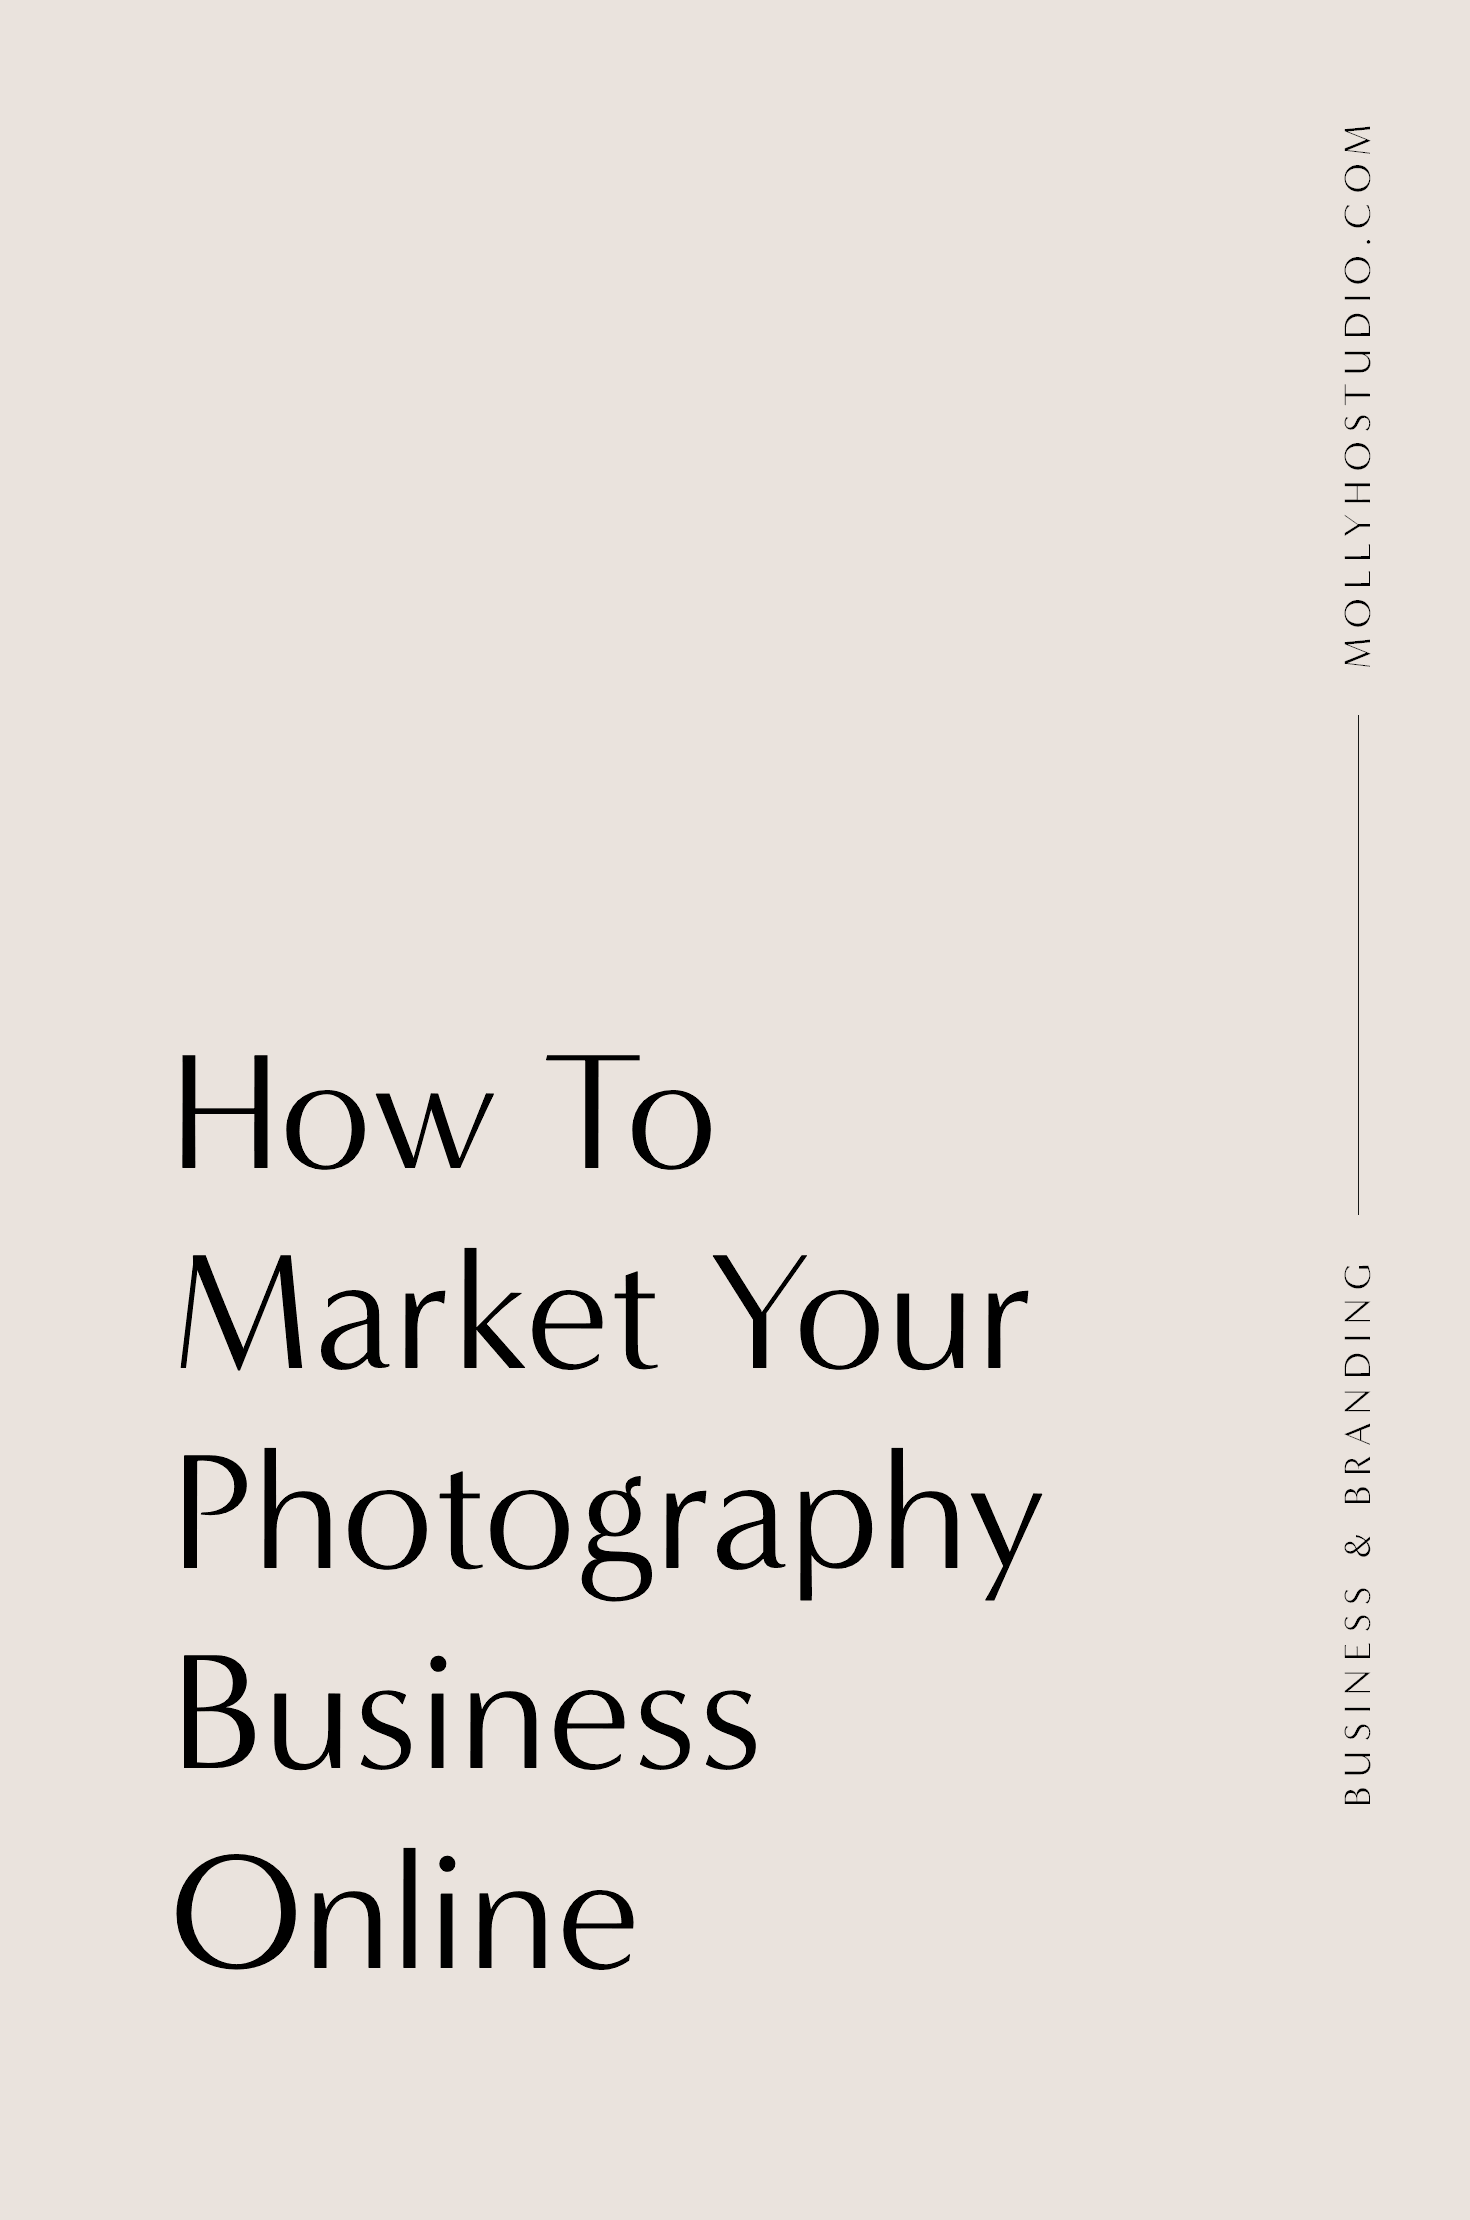 How To Market Your Photography Business Online | 3 Ways To Market Your Photography Business On Social Media | Branding and Marketing Tips for Photographers | Growing Your Photography Business | Getting More Photography Clients | How To Sell Yourself As A Photographer | Molly Ho Studio